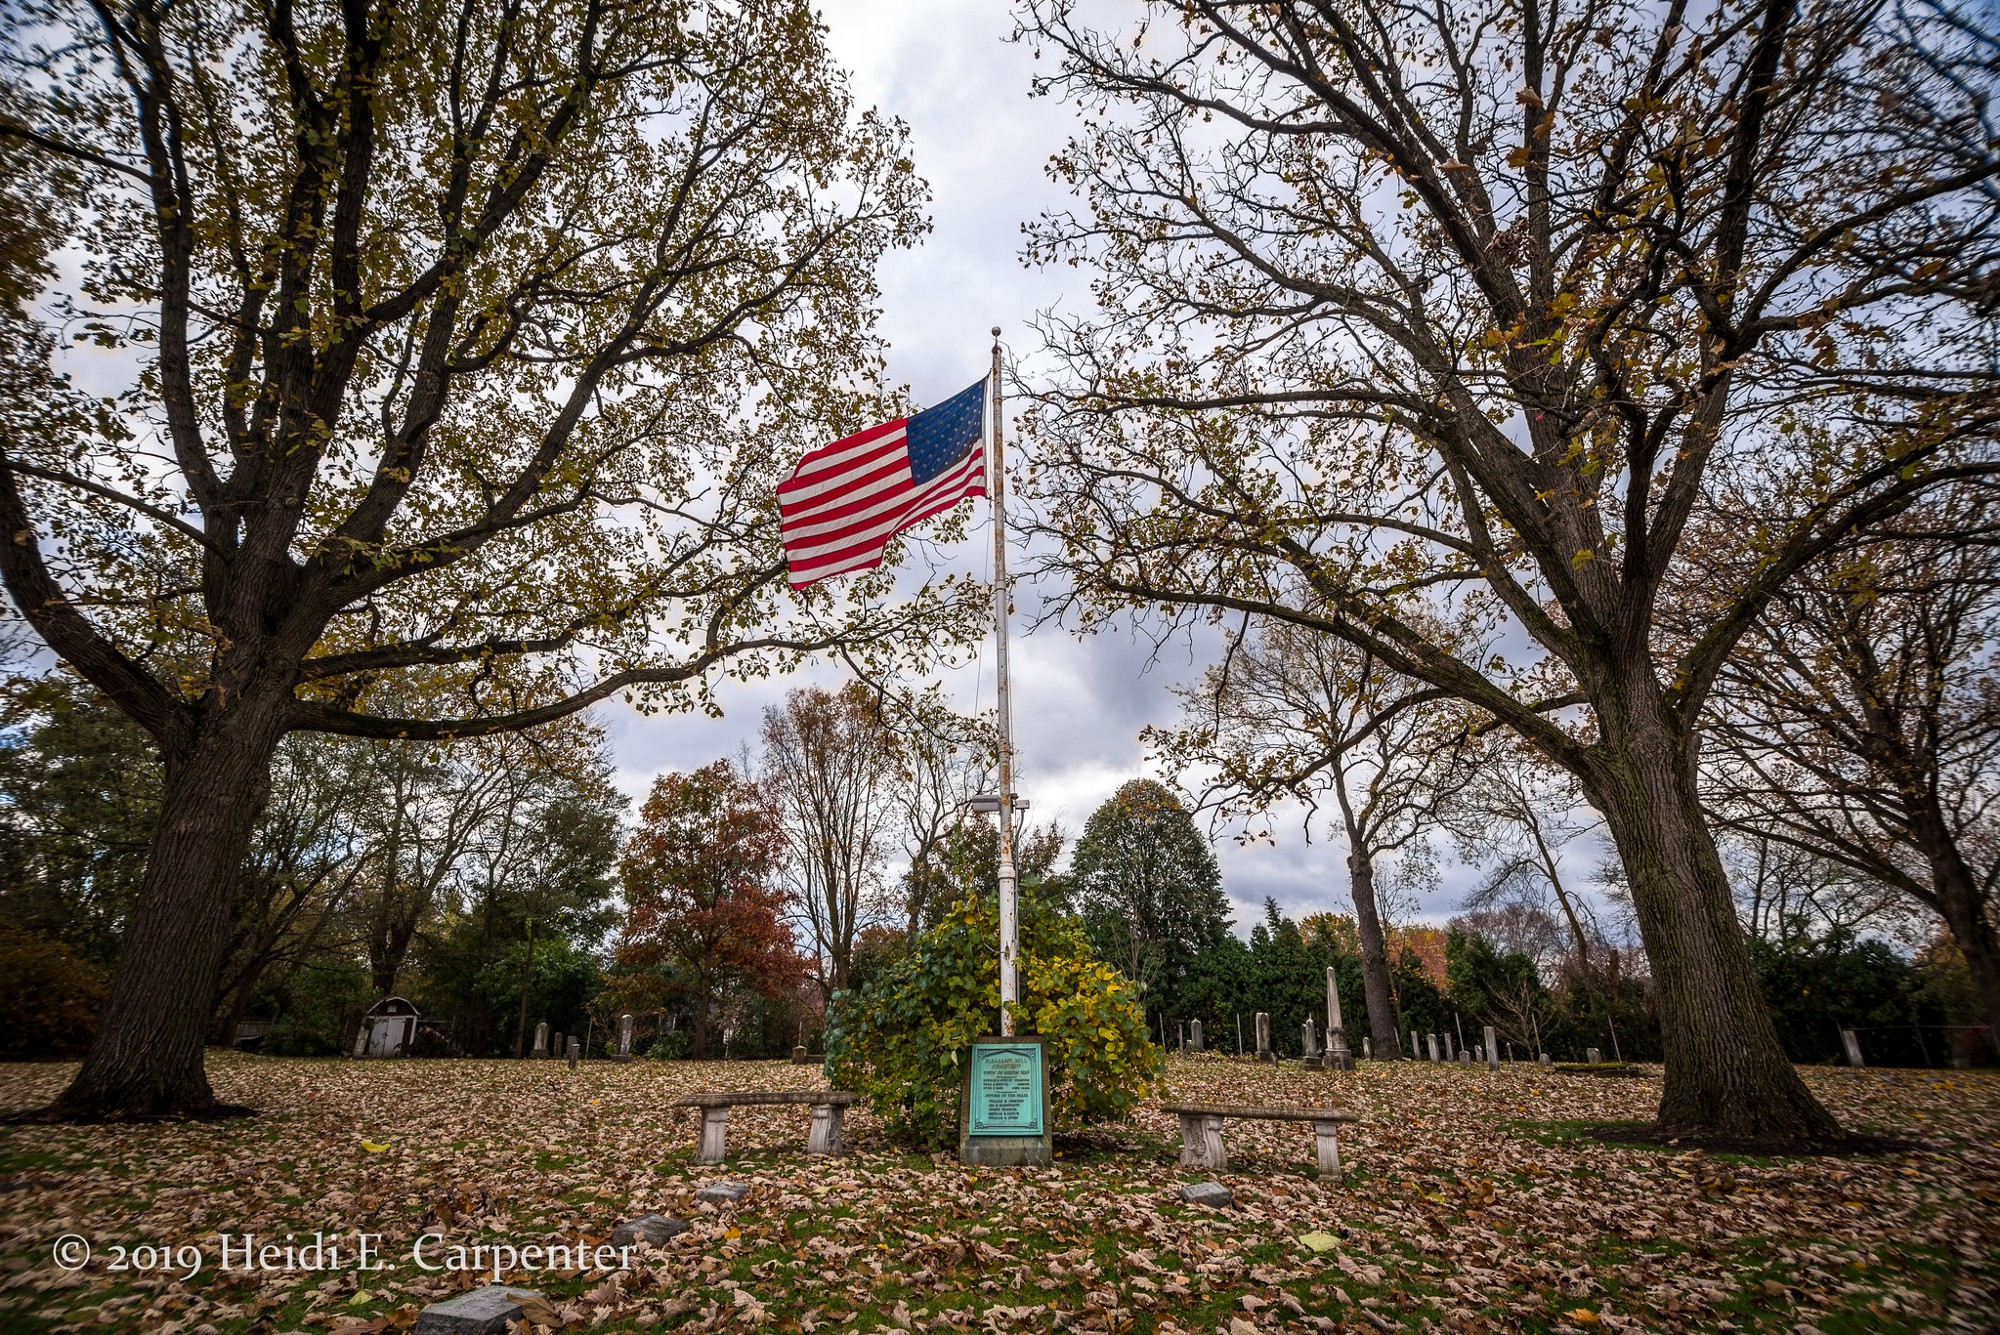 A flagpole with an American flag, flanked by trees, in a cemetery on an overcast autumn day.